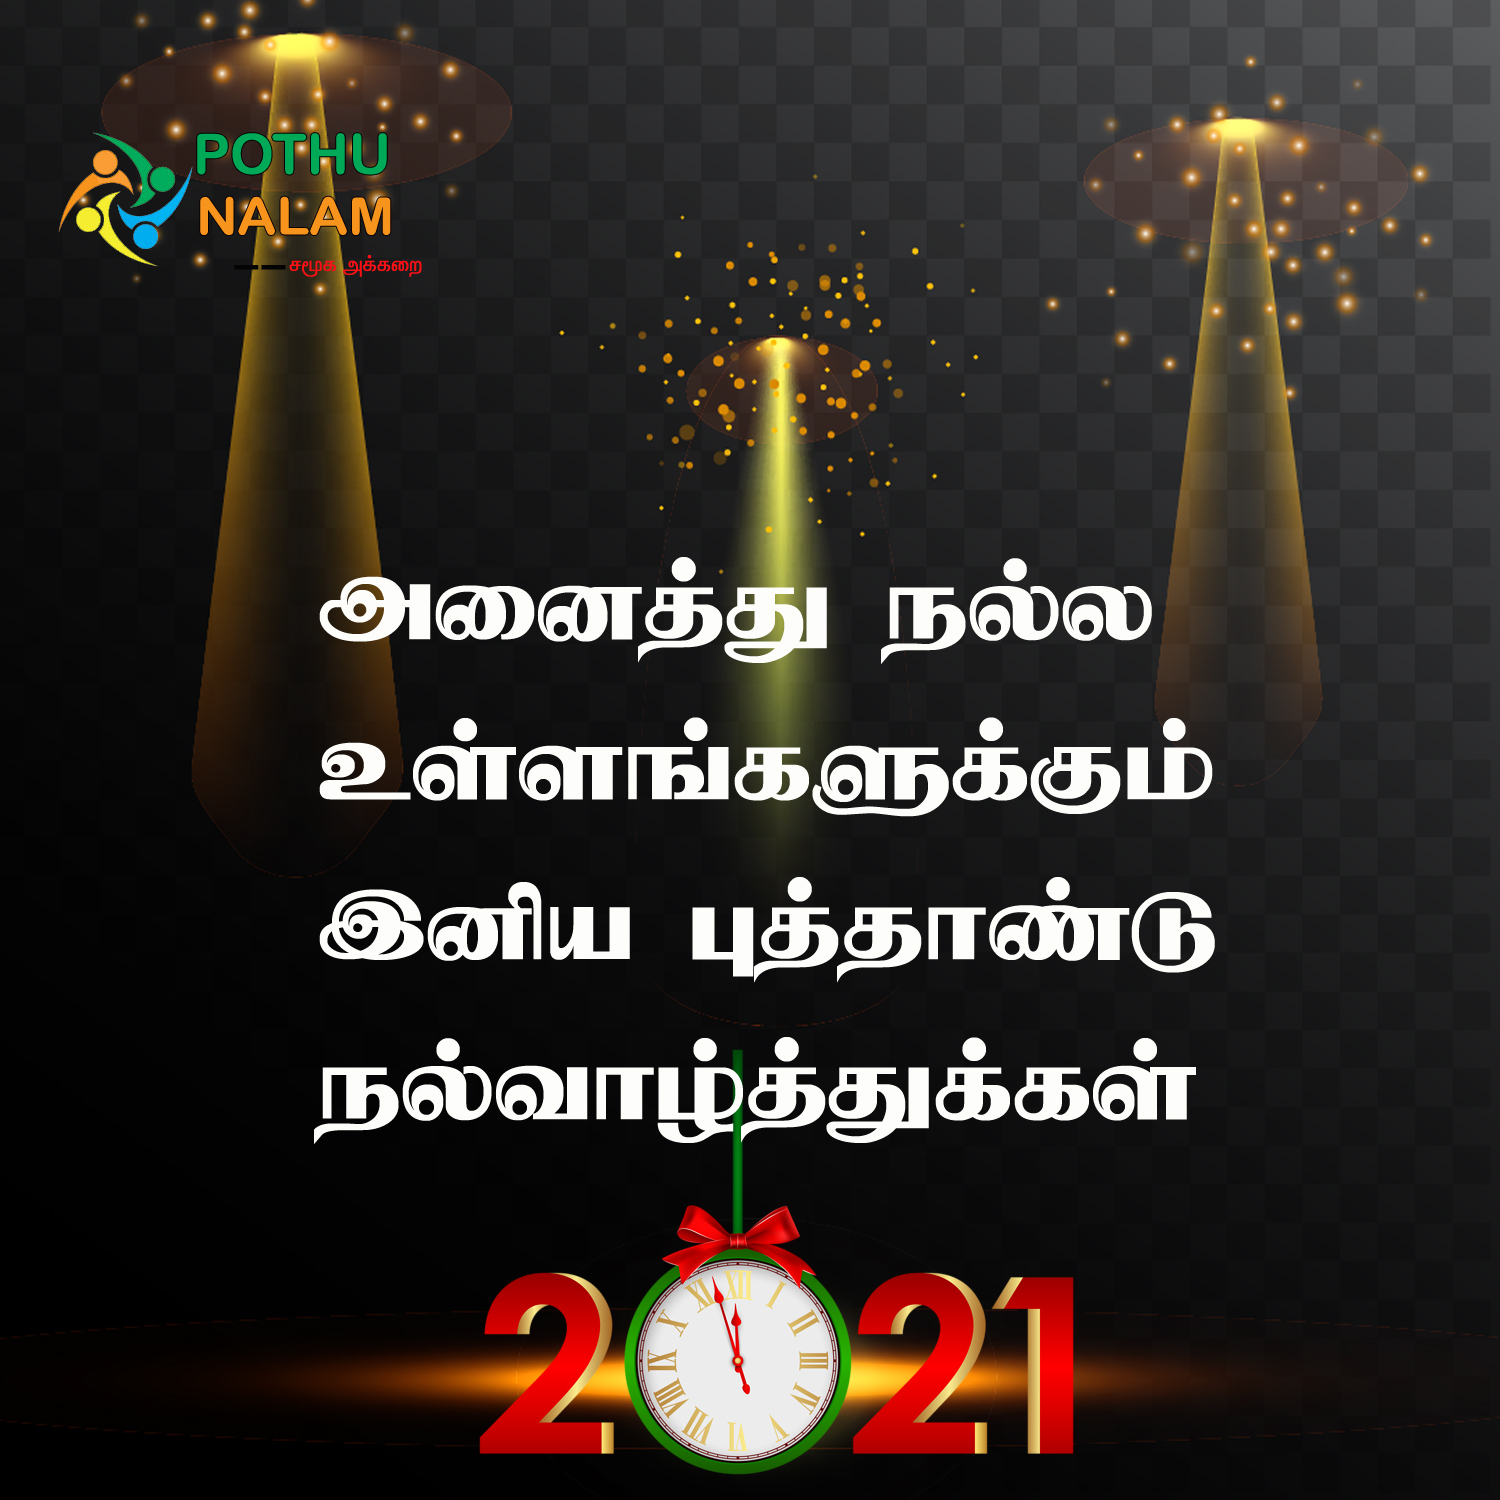 New Year 2021 Wishes in Tamil